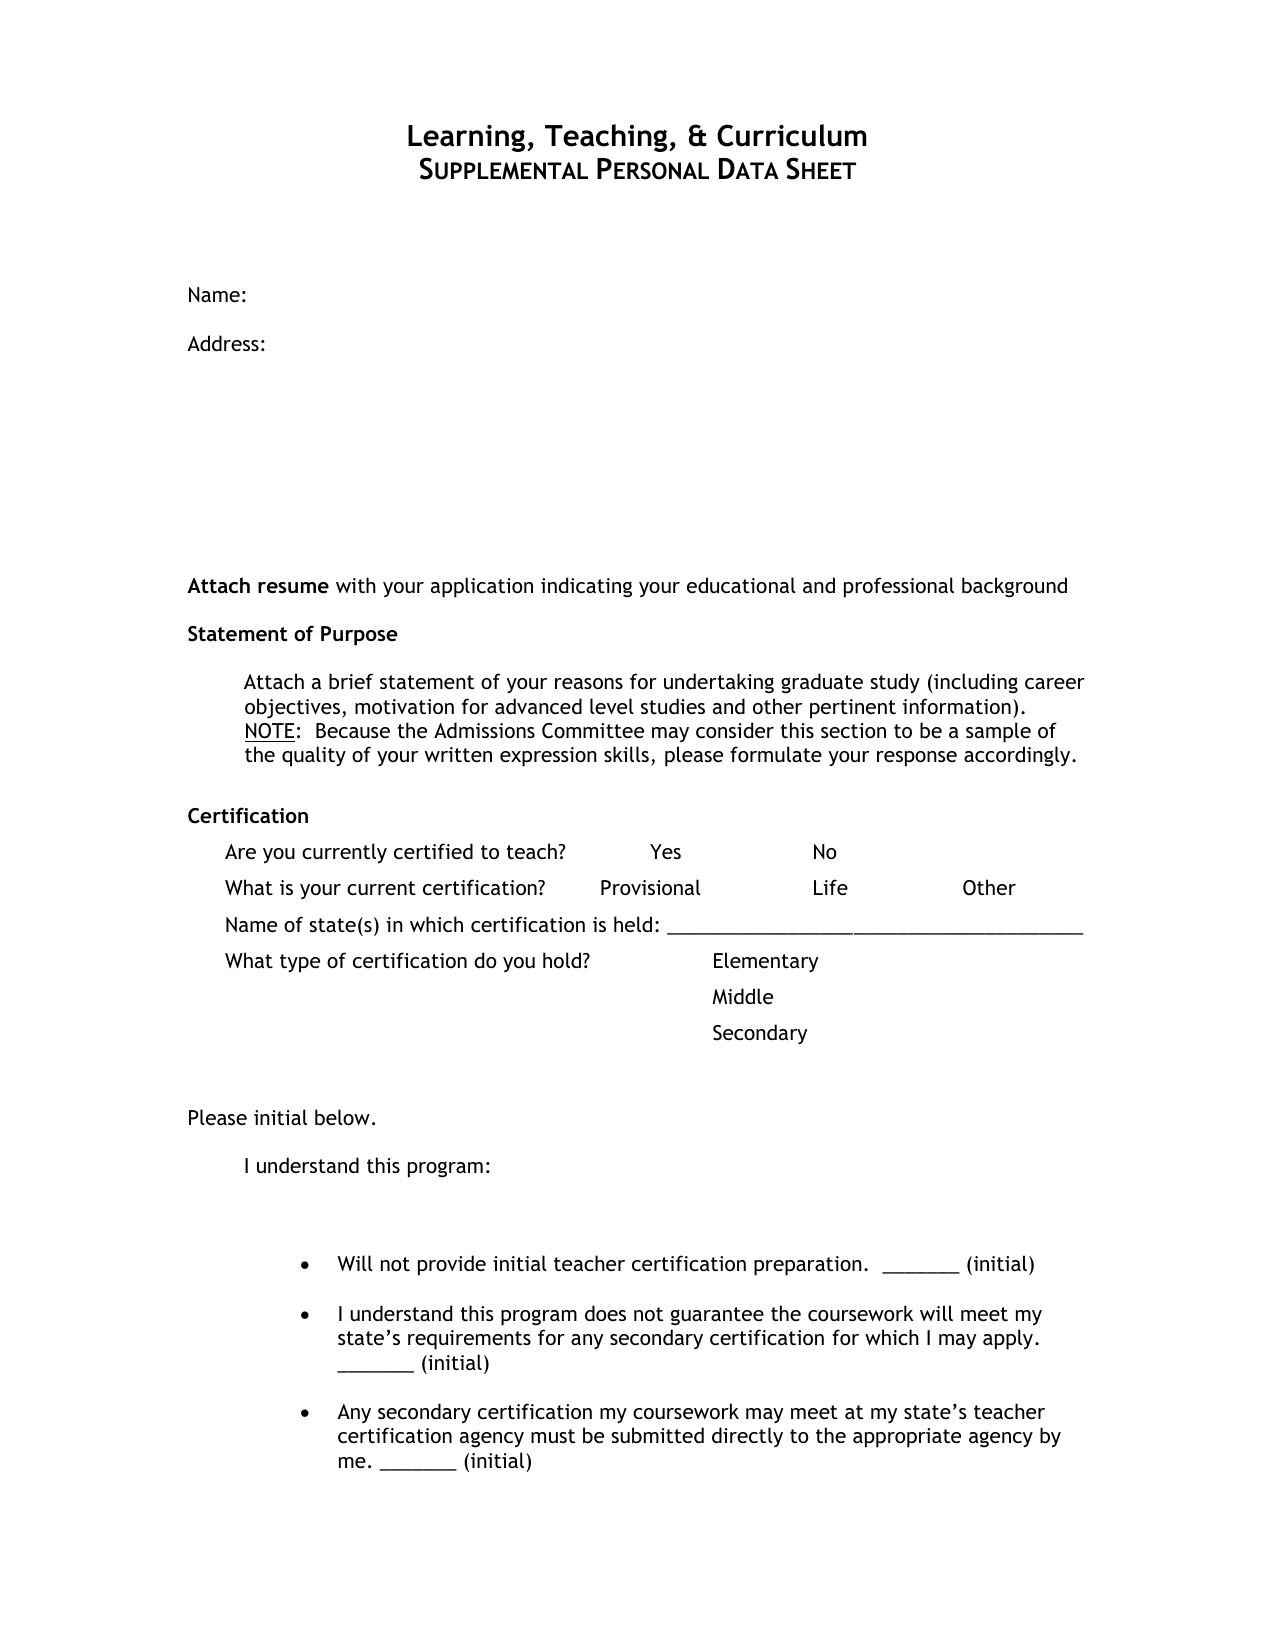 statement of purpose sample for masters degree